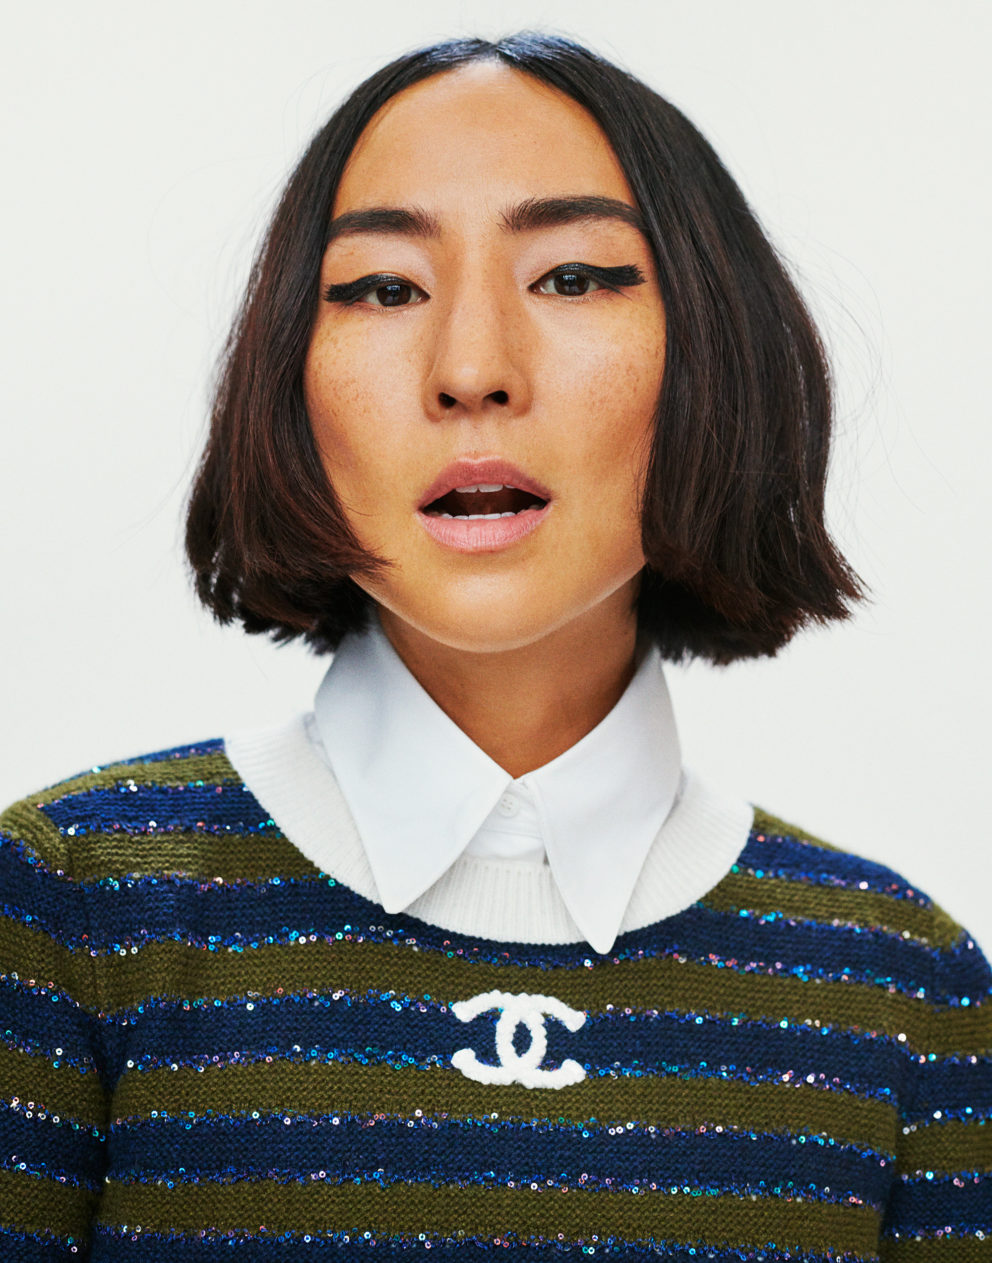 191020 0070 Sbjct Greta Lee 092 By Christian Chogstedt Web